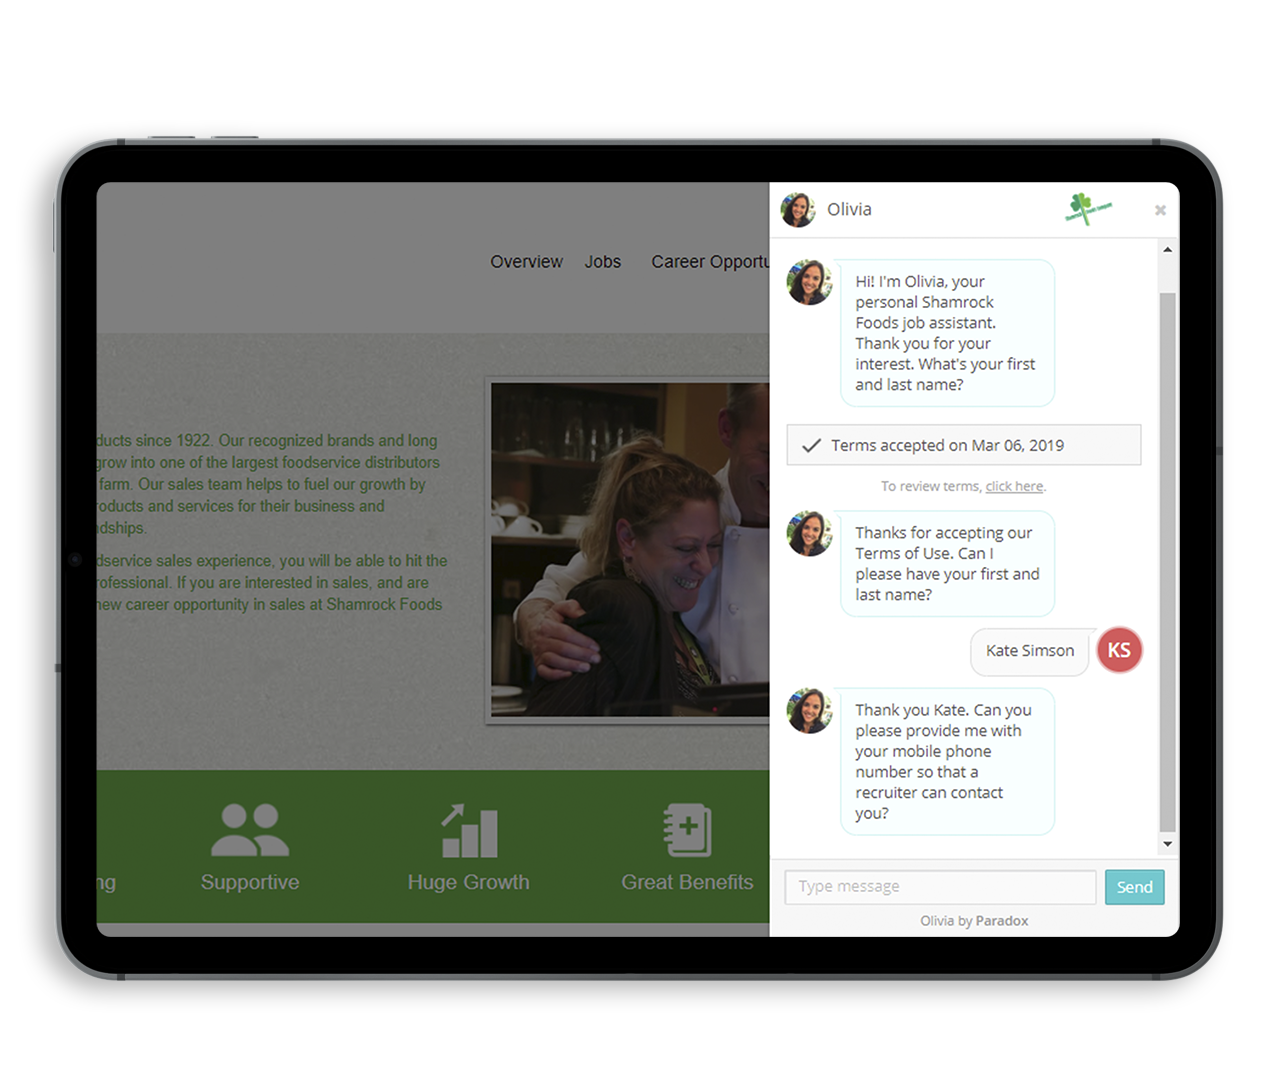 Shamrock Foods, an American catering company, is another example of employers using a Recruitment Chatbot